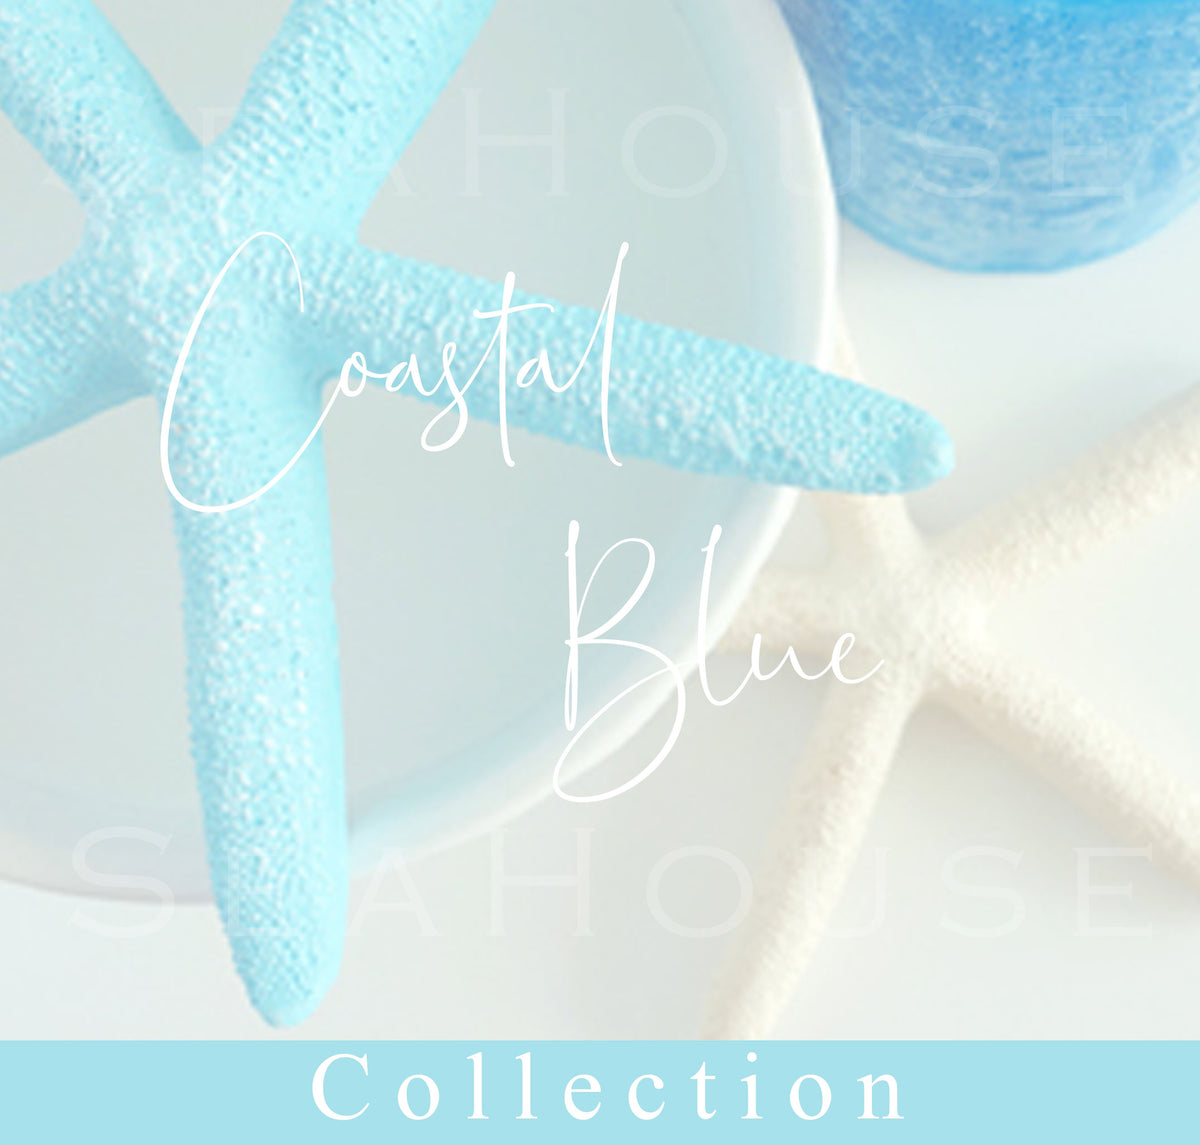 Coastal Blue Collection Image